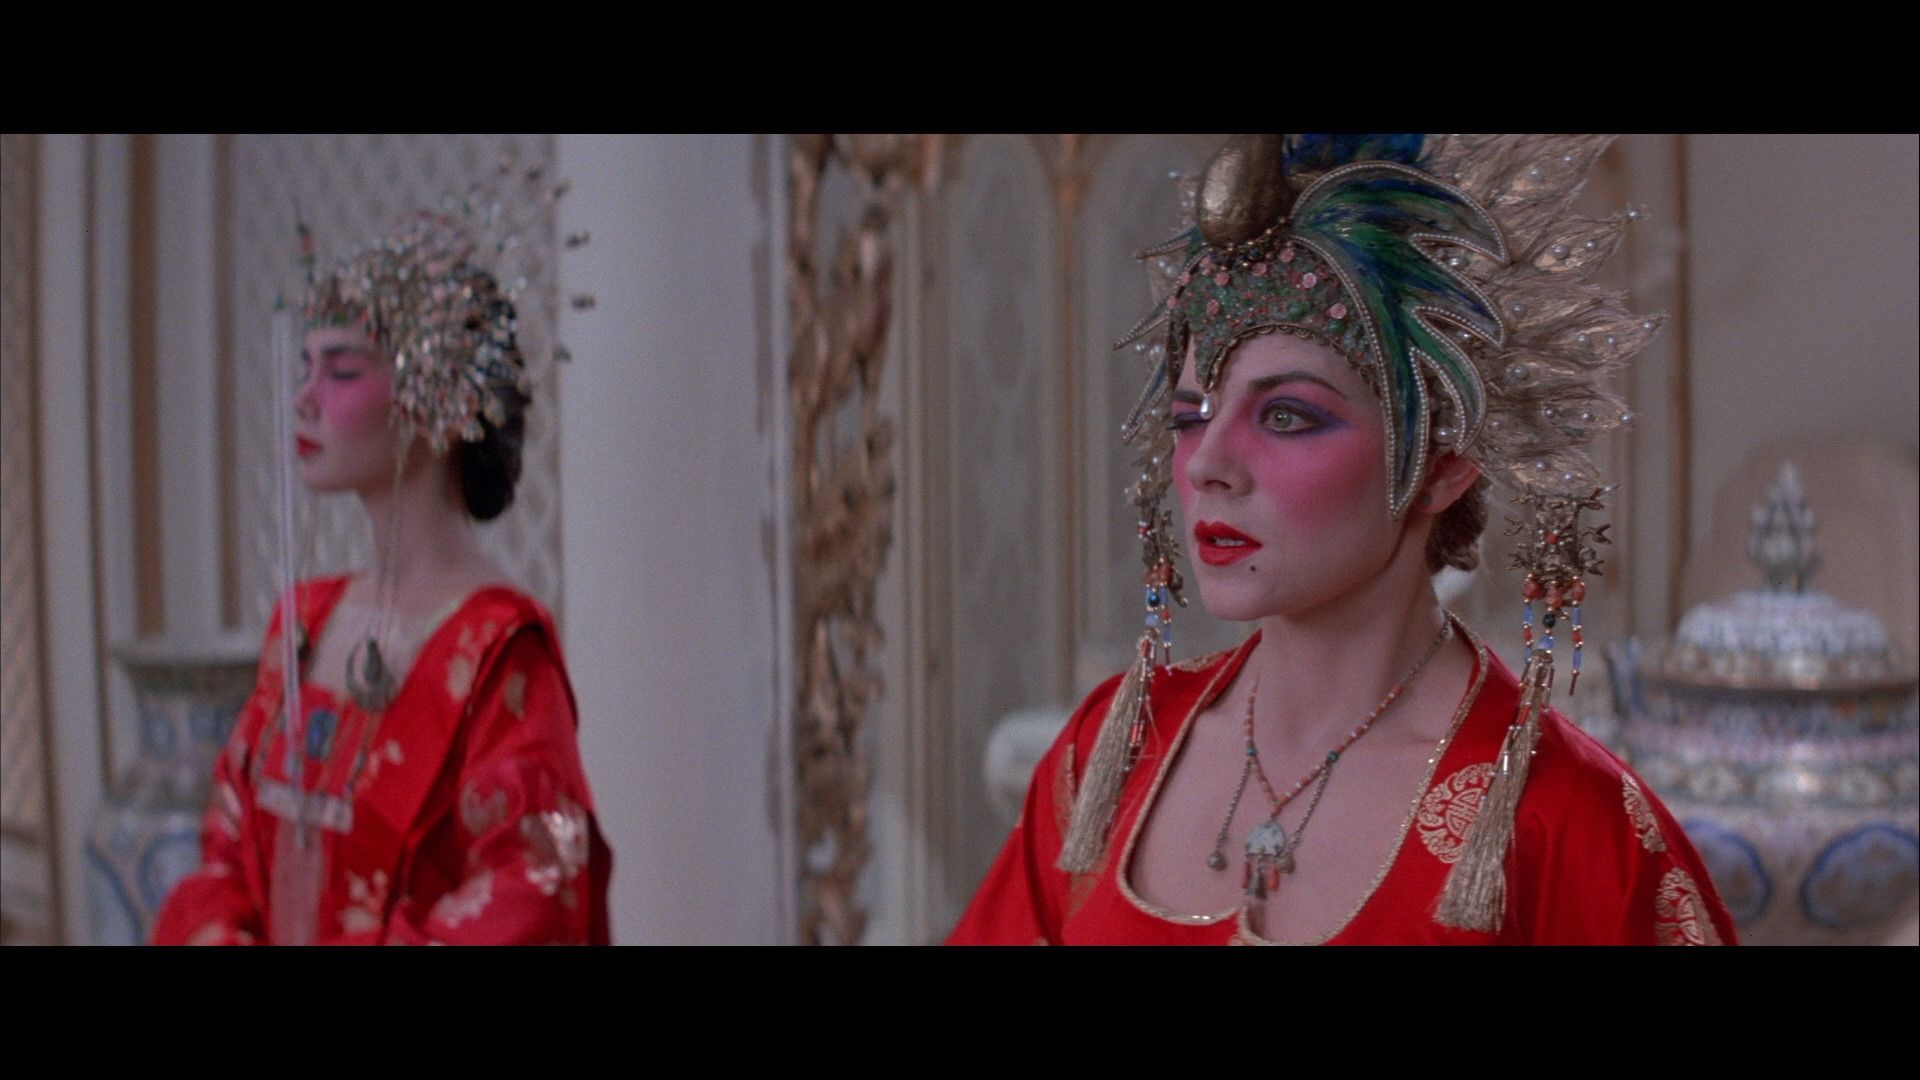 2 Girls With Green Eyes Kim Cattrall Girl With Green Eyes